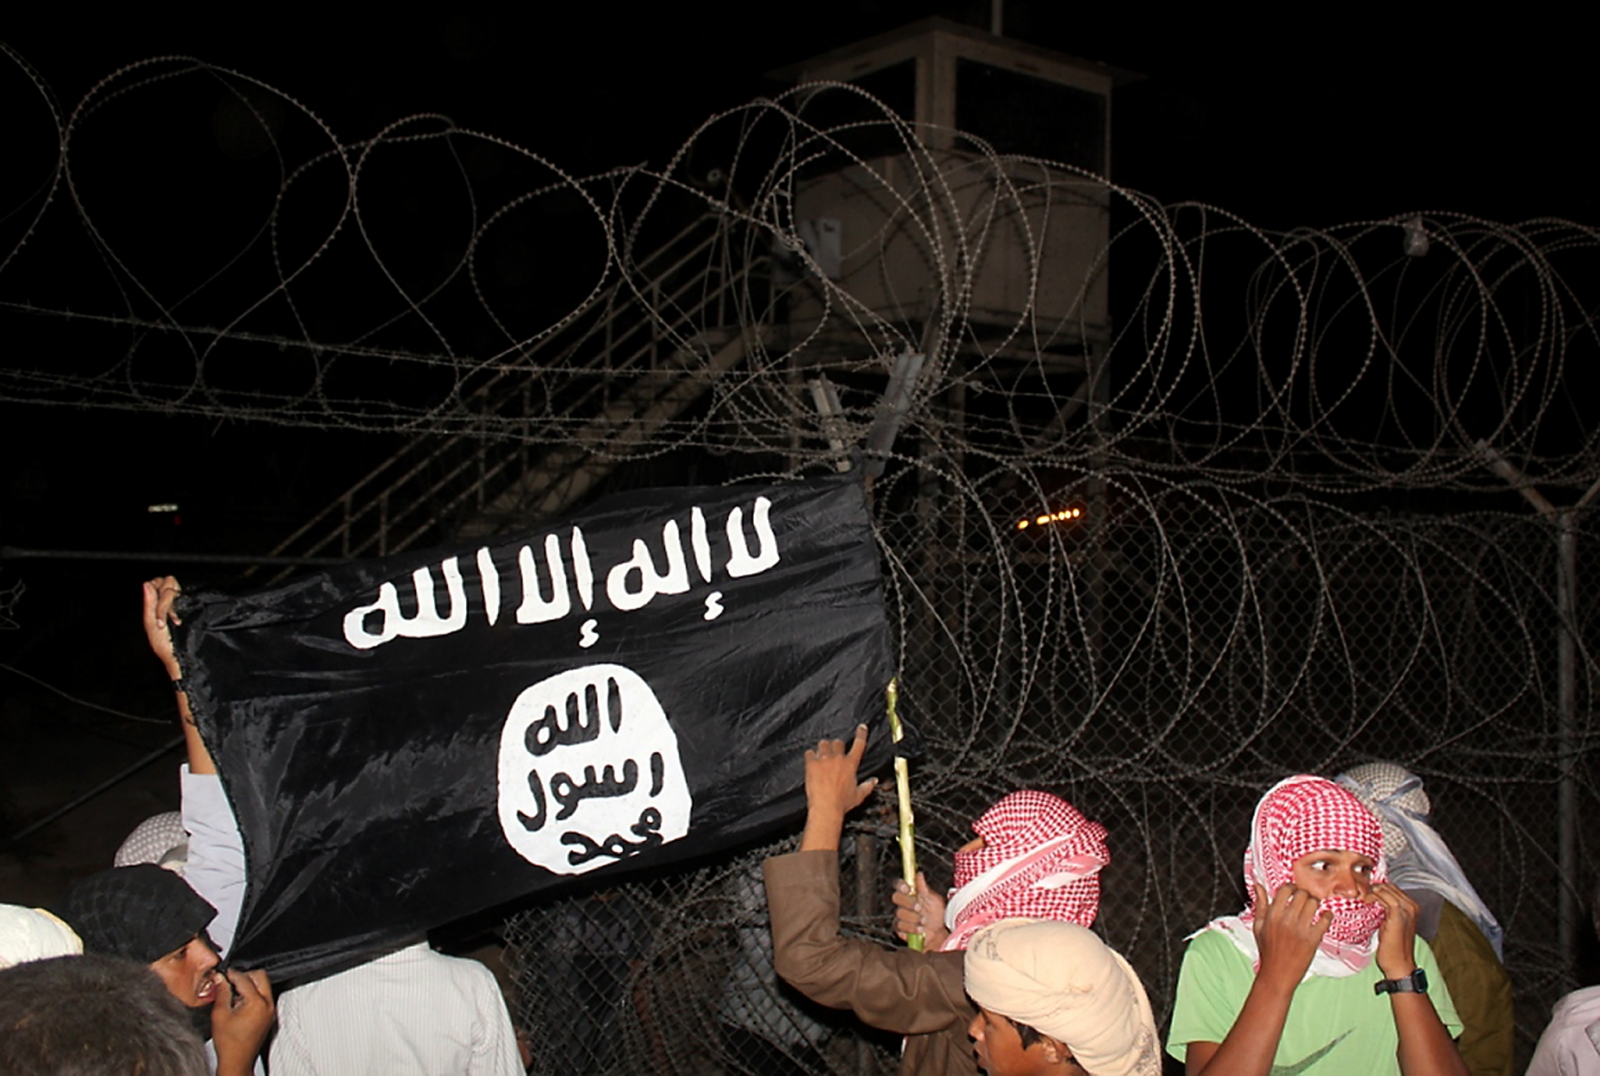 Protesters in Sinai hold aloft the Isis flag. (Getty)